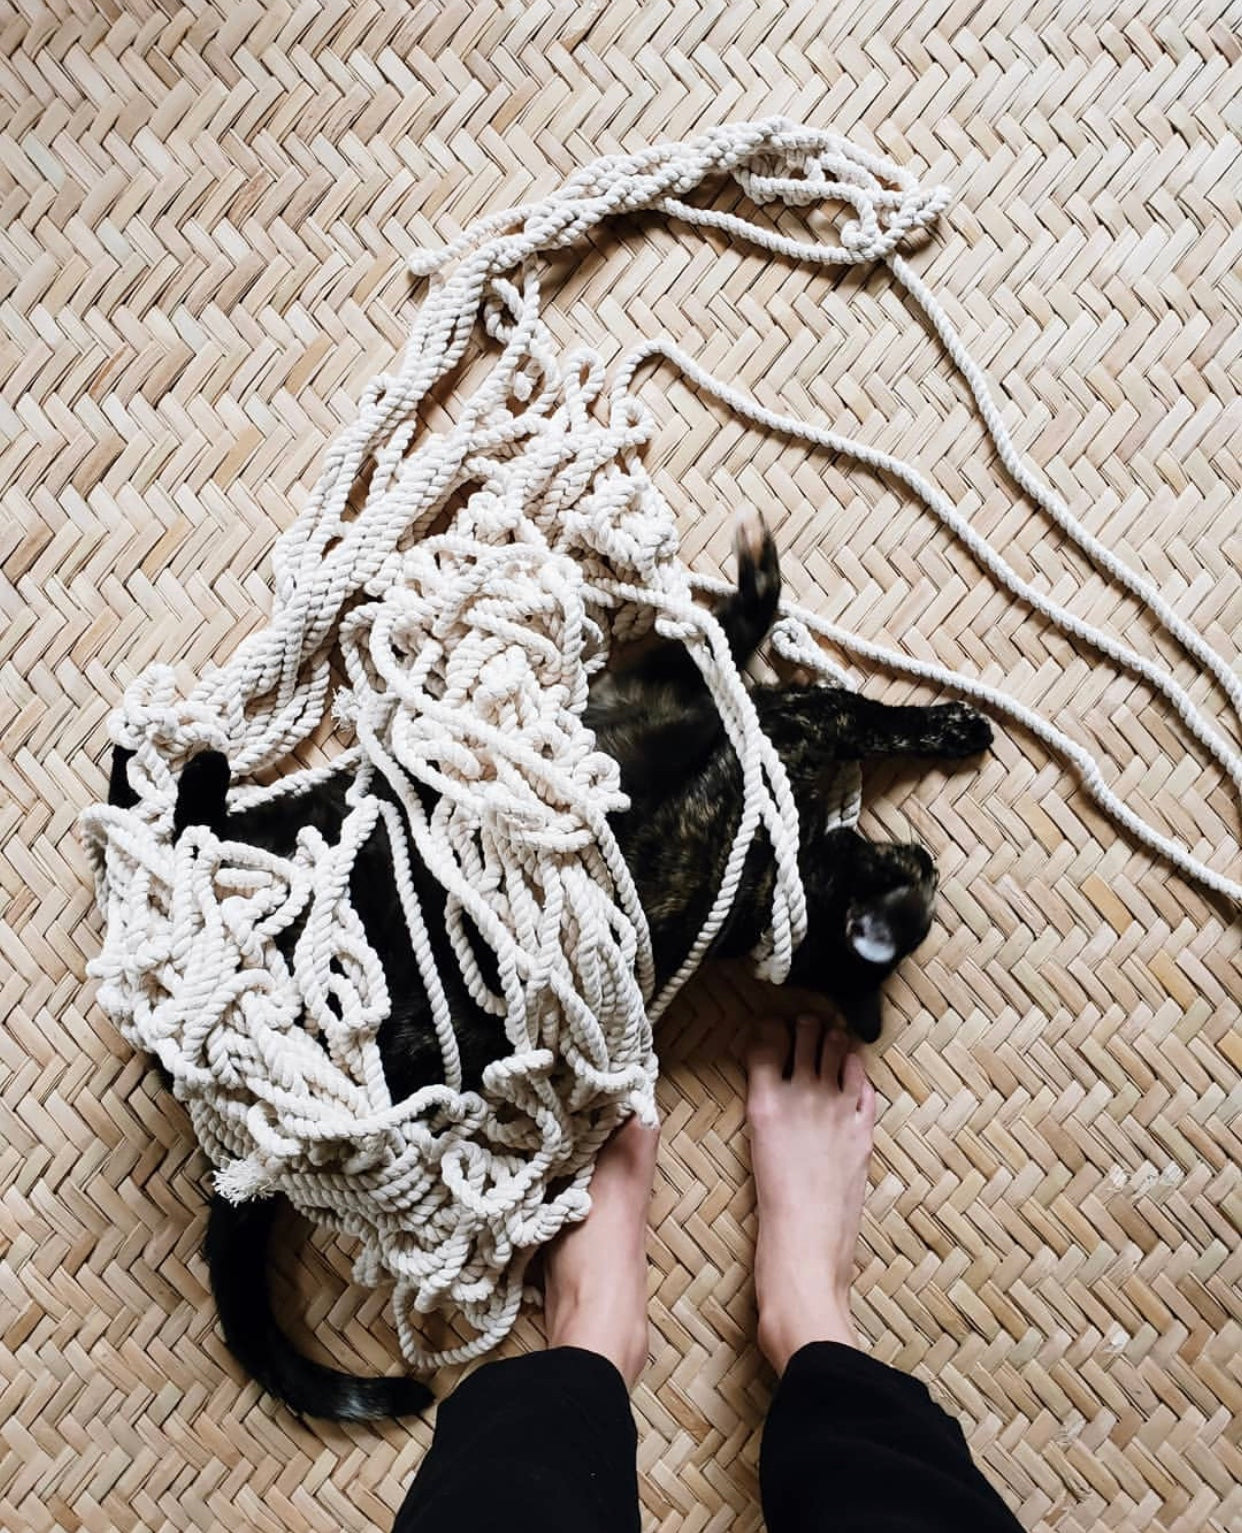 Black cat all tangled up in macramé rope